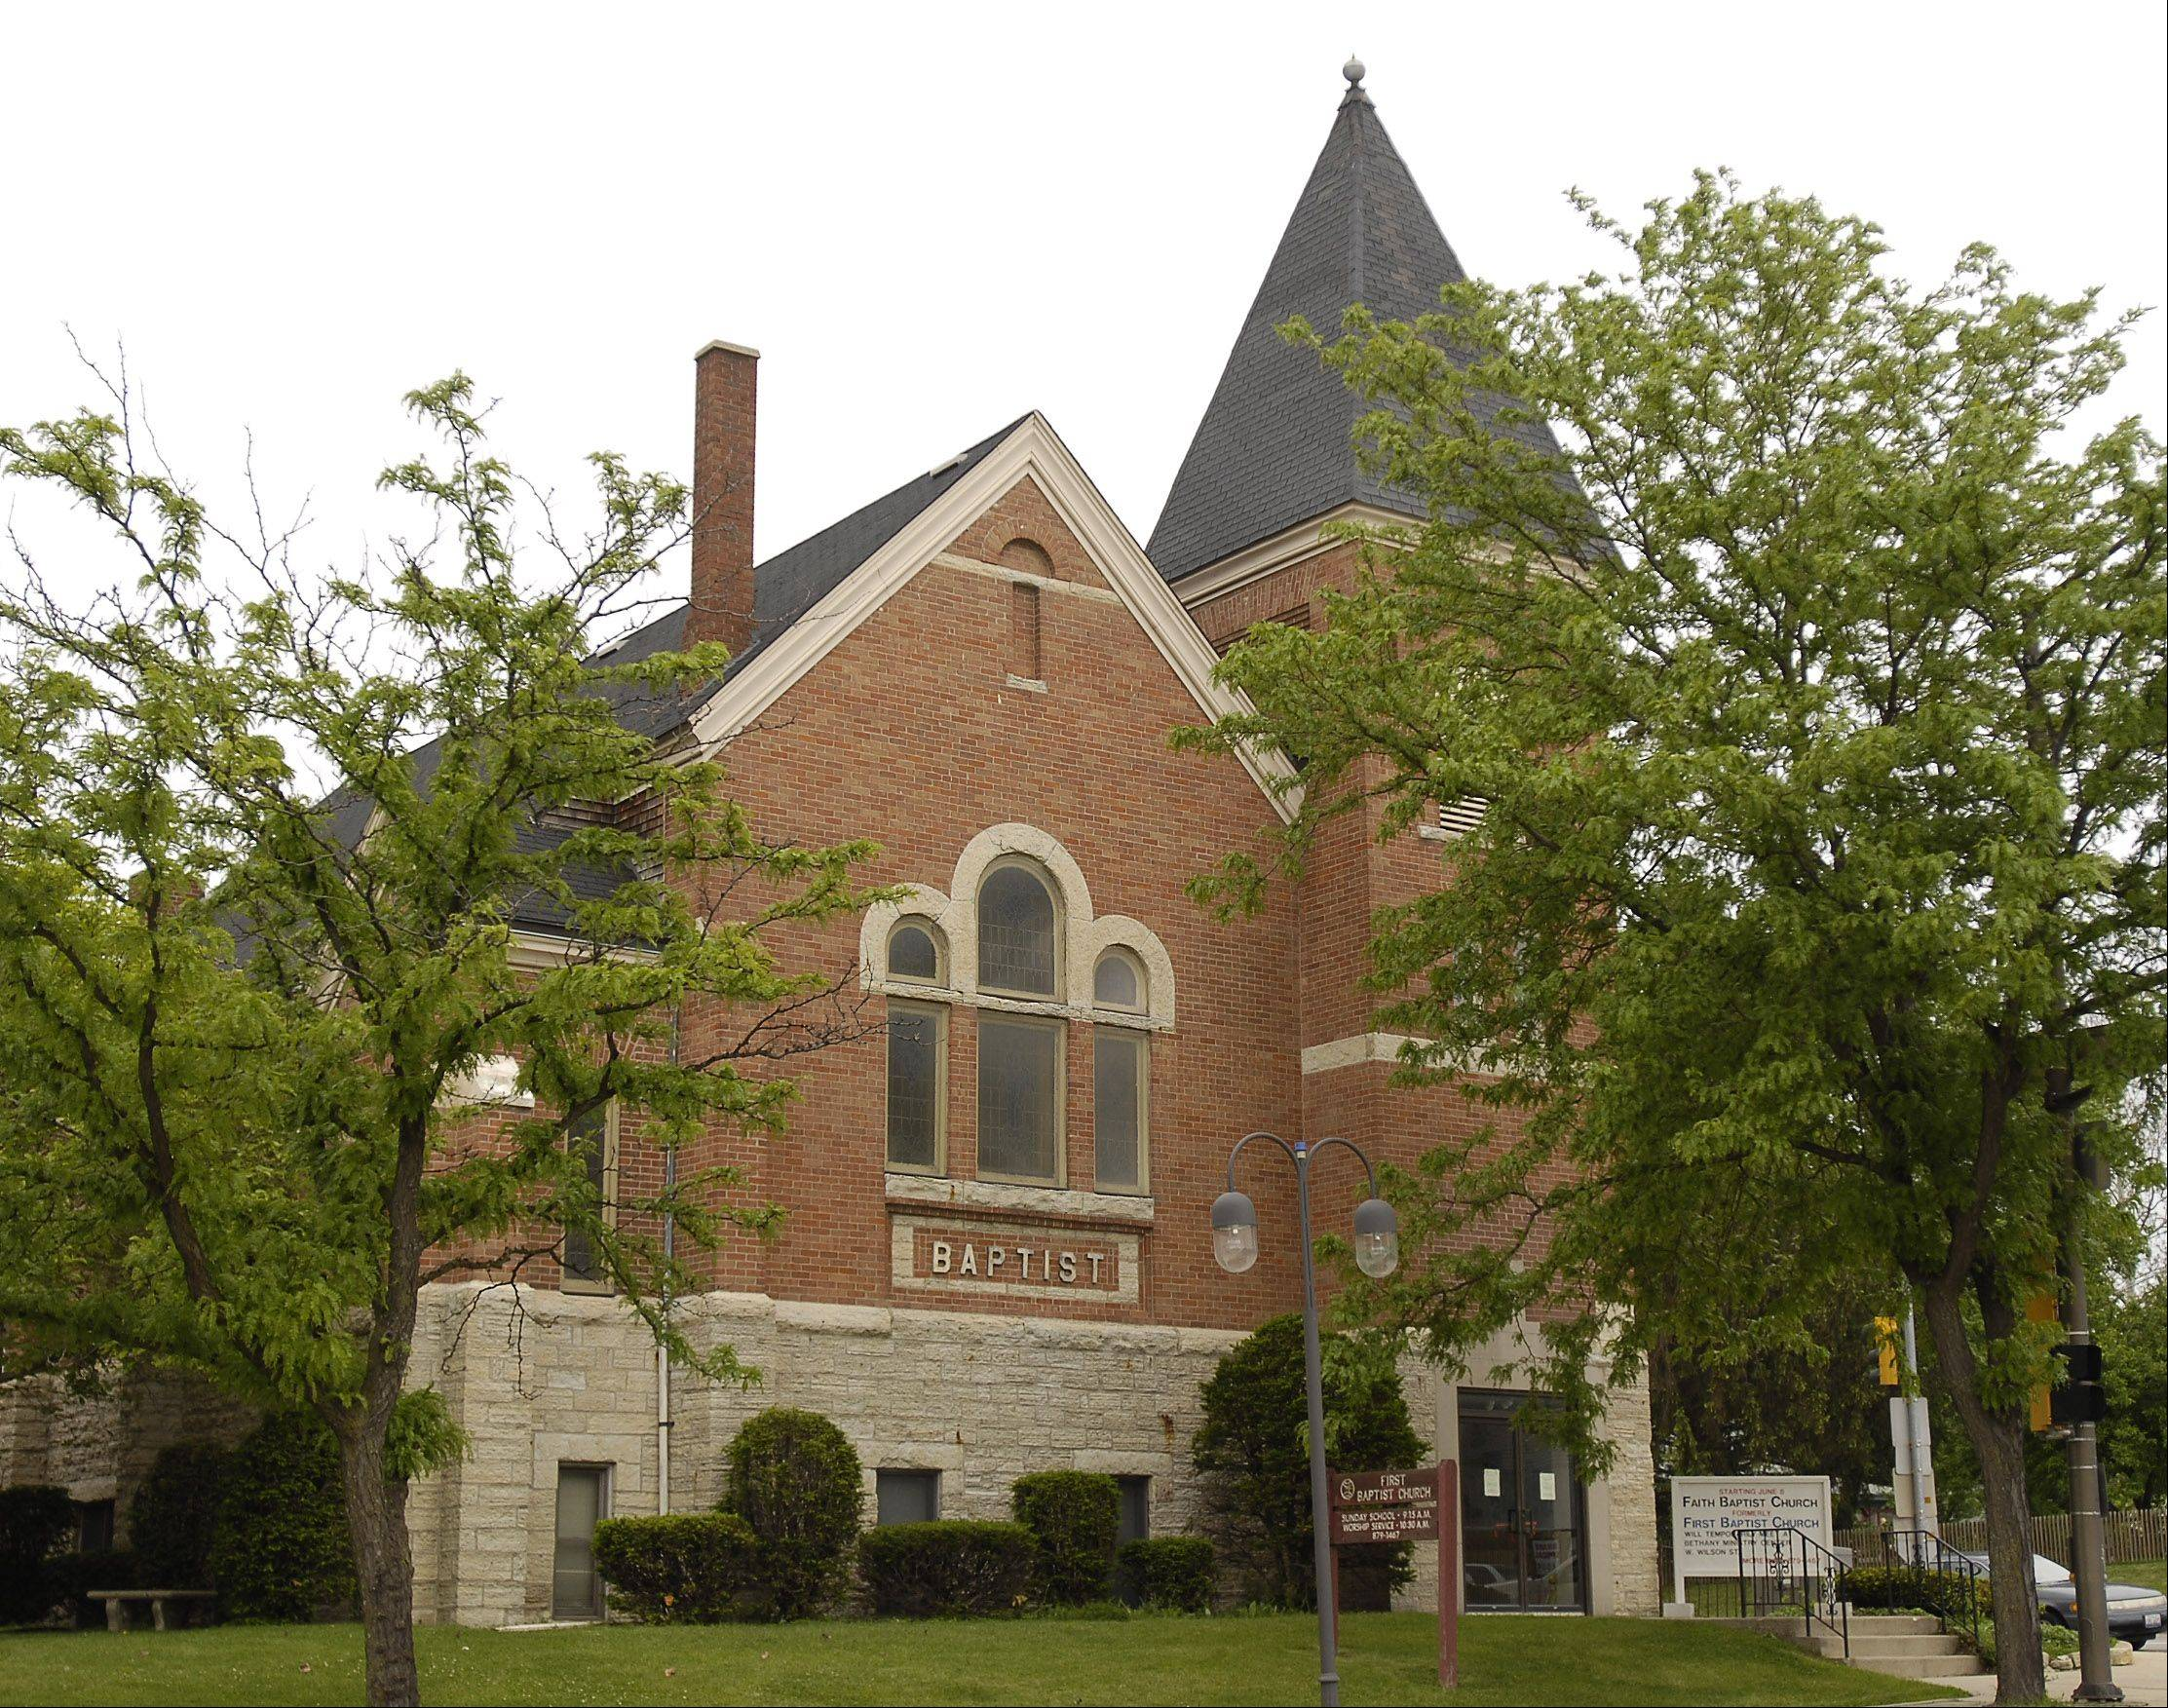 The former First Baptist Church in Batavia. An open house is scheduled for 6:30 p.m. July 30, as the city council decides the fate of the building.